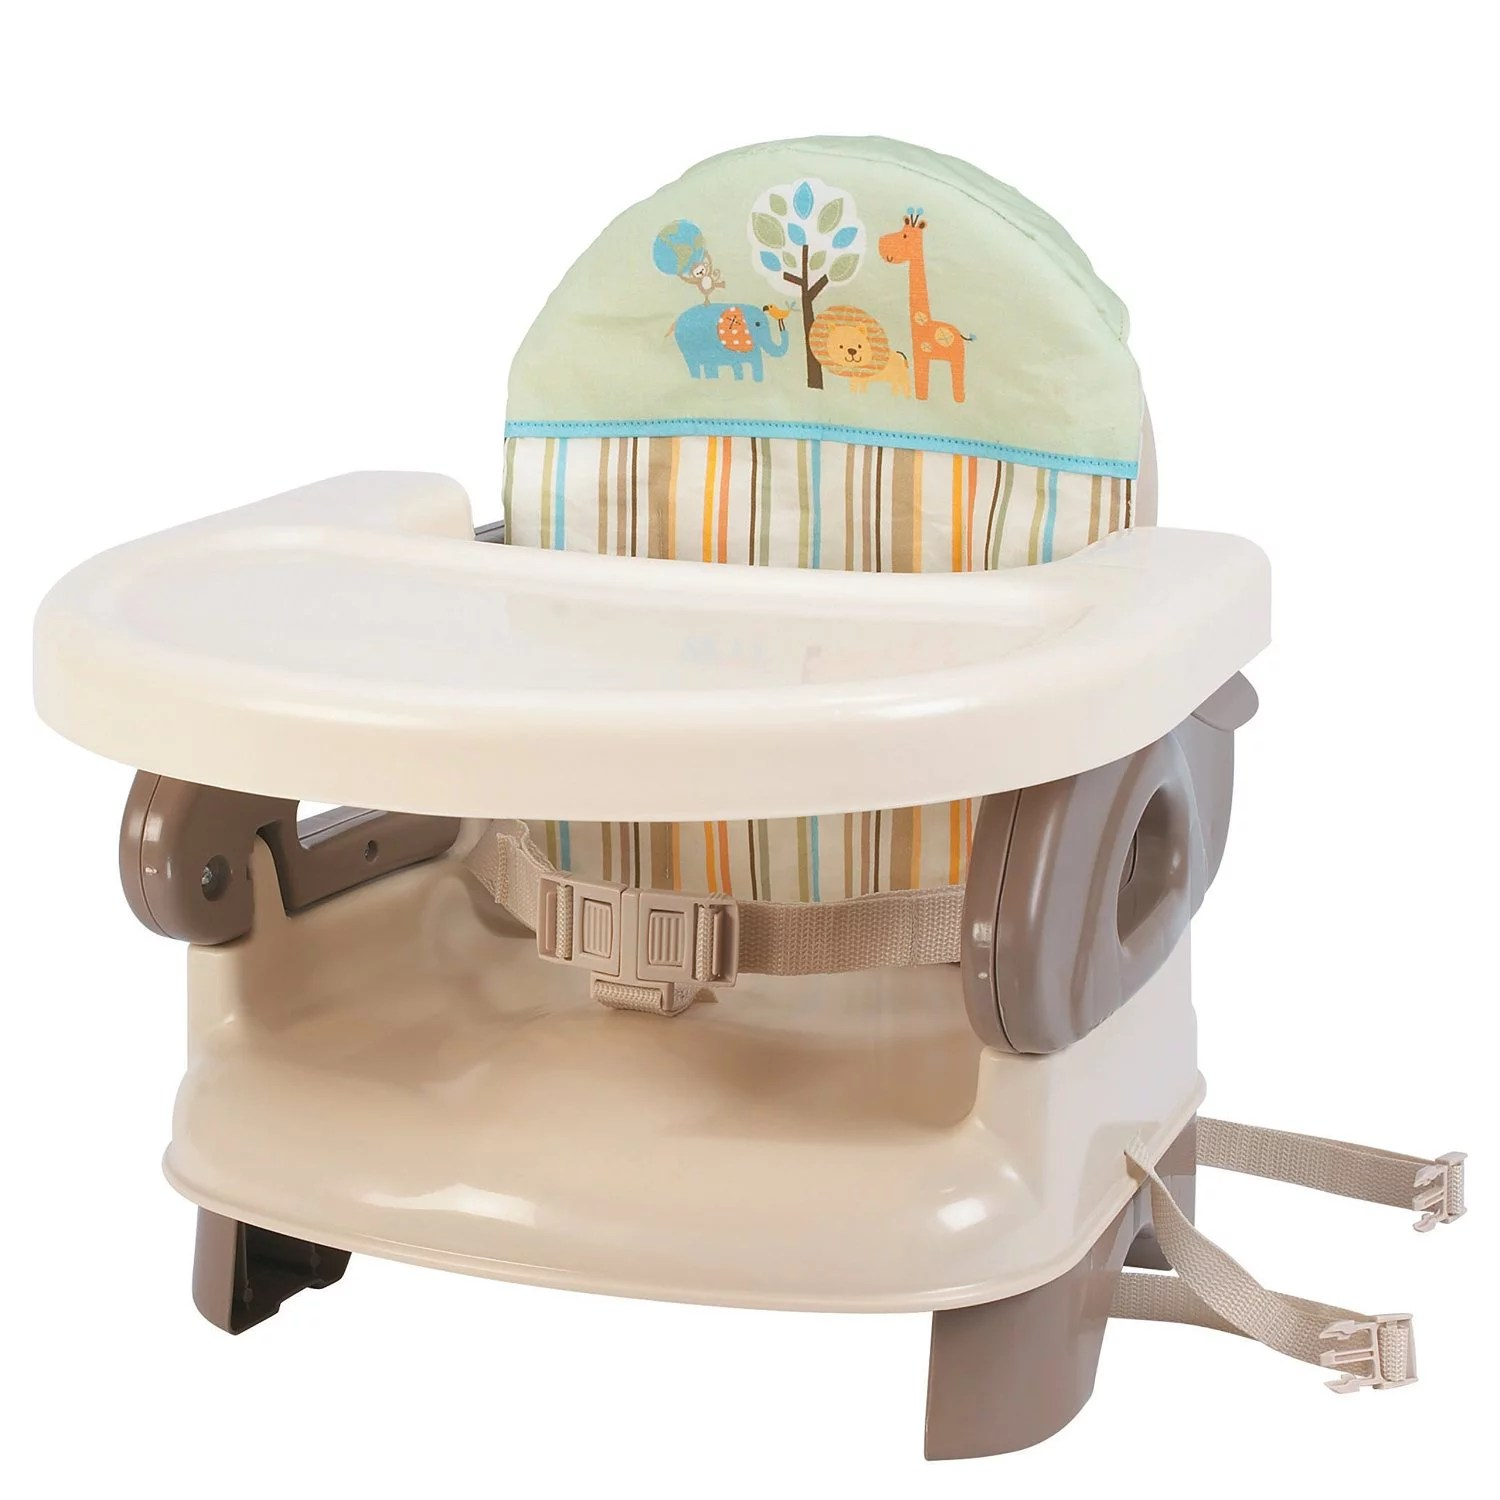 Booster High Chair Seat Summer Infant Deluxe Comfort Folding Booster Seat Tan